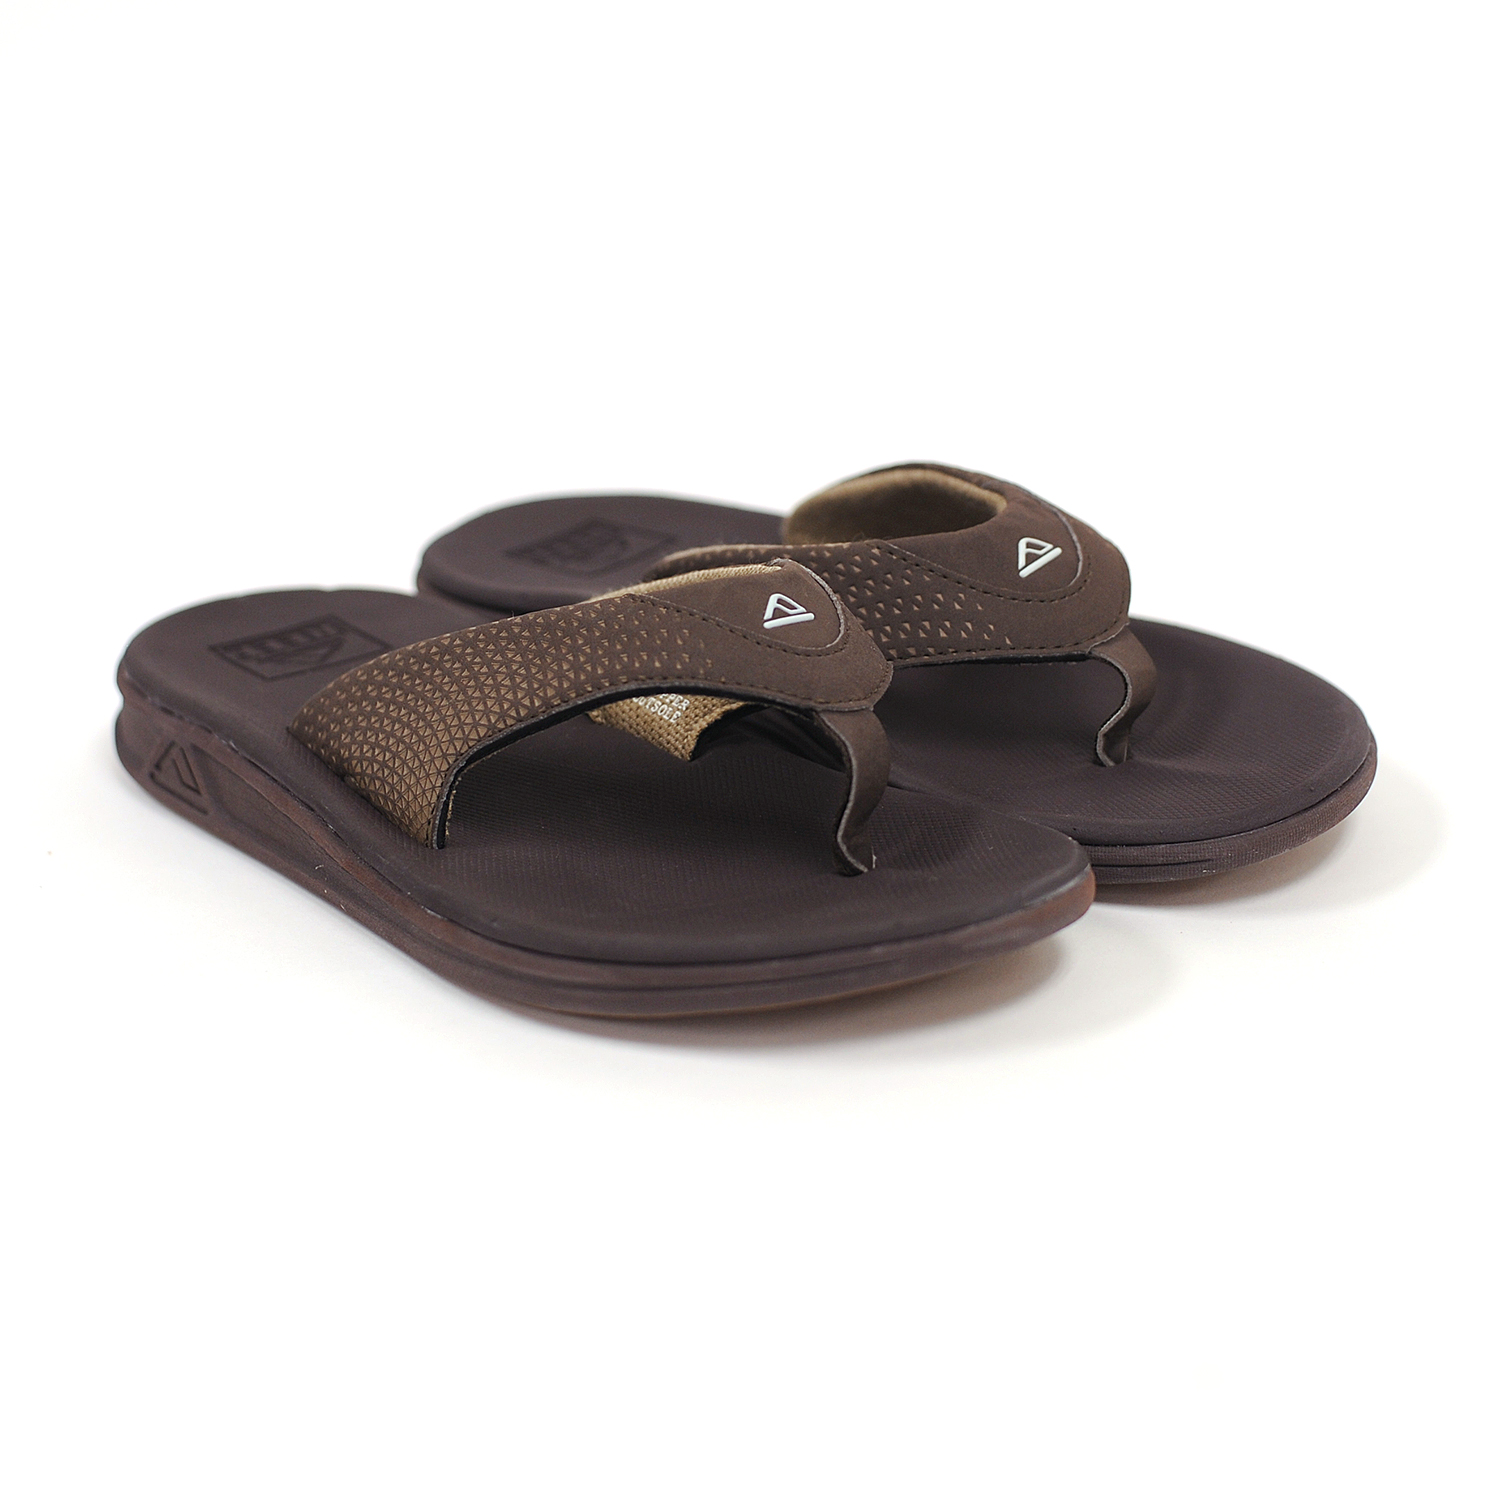 9da4d60cebe3 Reef Rover (Brown) Men s Sandals